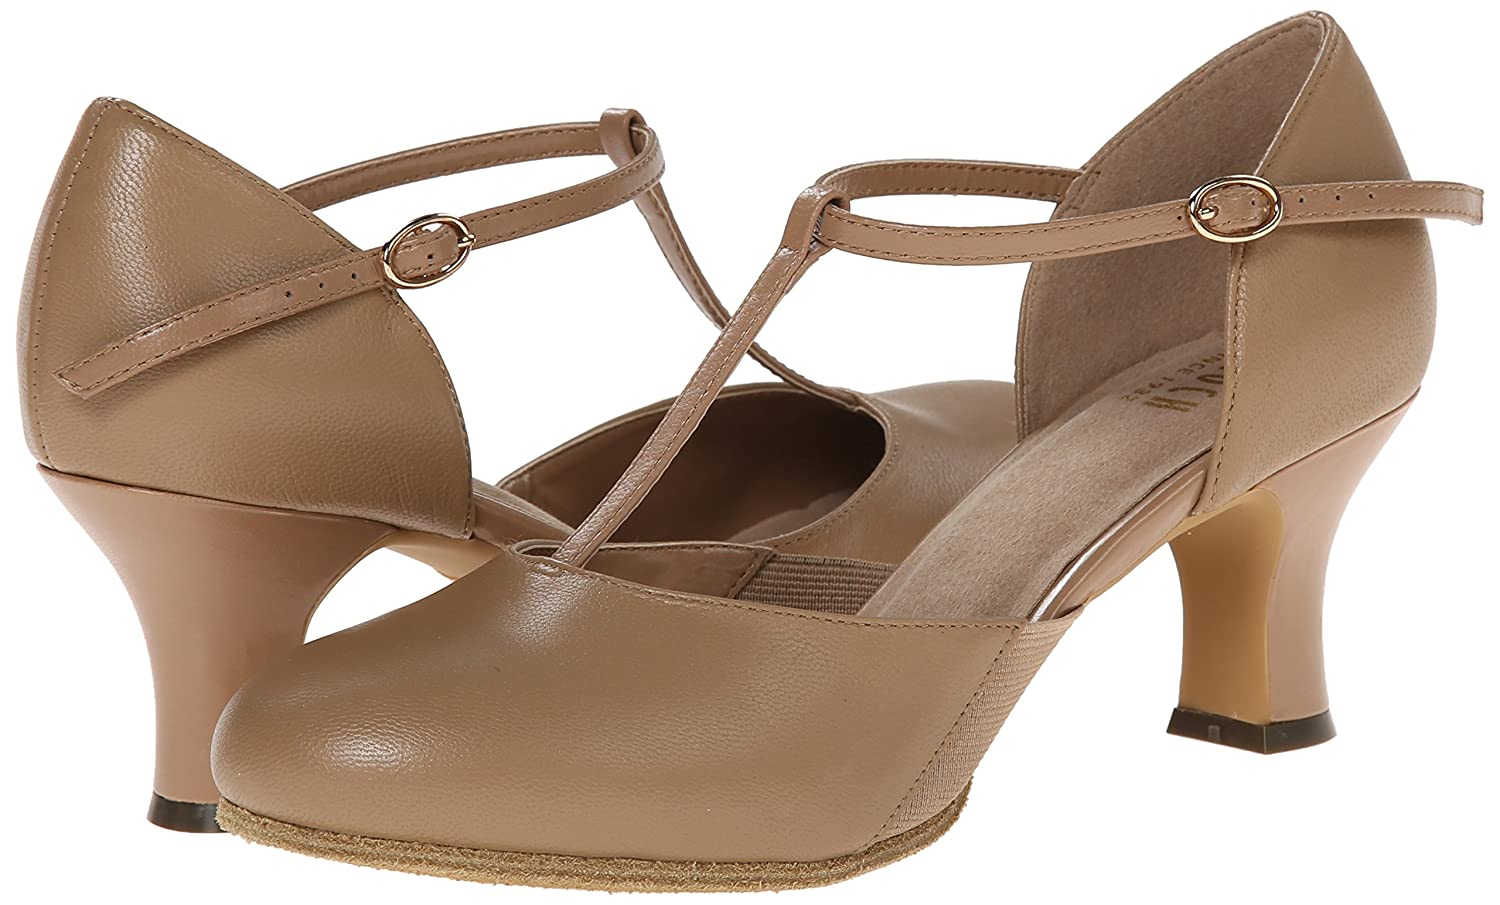 Bloch Dance Shoe Women's Split Flex Character Shoe Dance B0041HZ3D2 10.5 X(Medium) US|Tan 1e3931